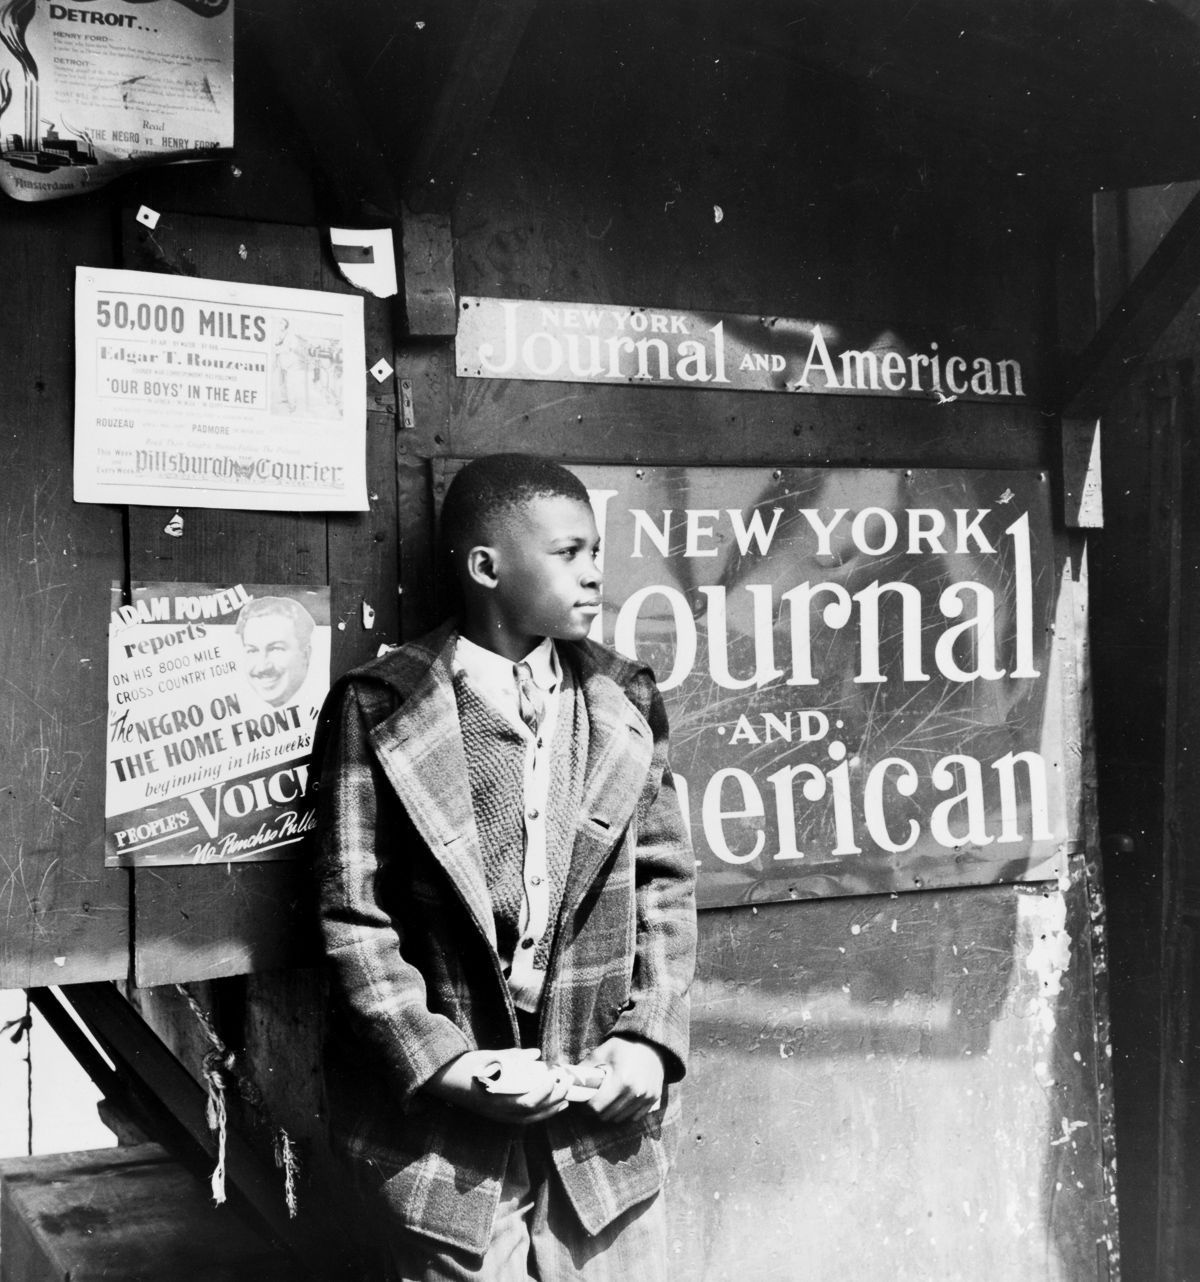 1943: Harlem through the lens of legendary photographer Gordon Parks